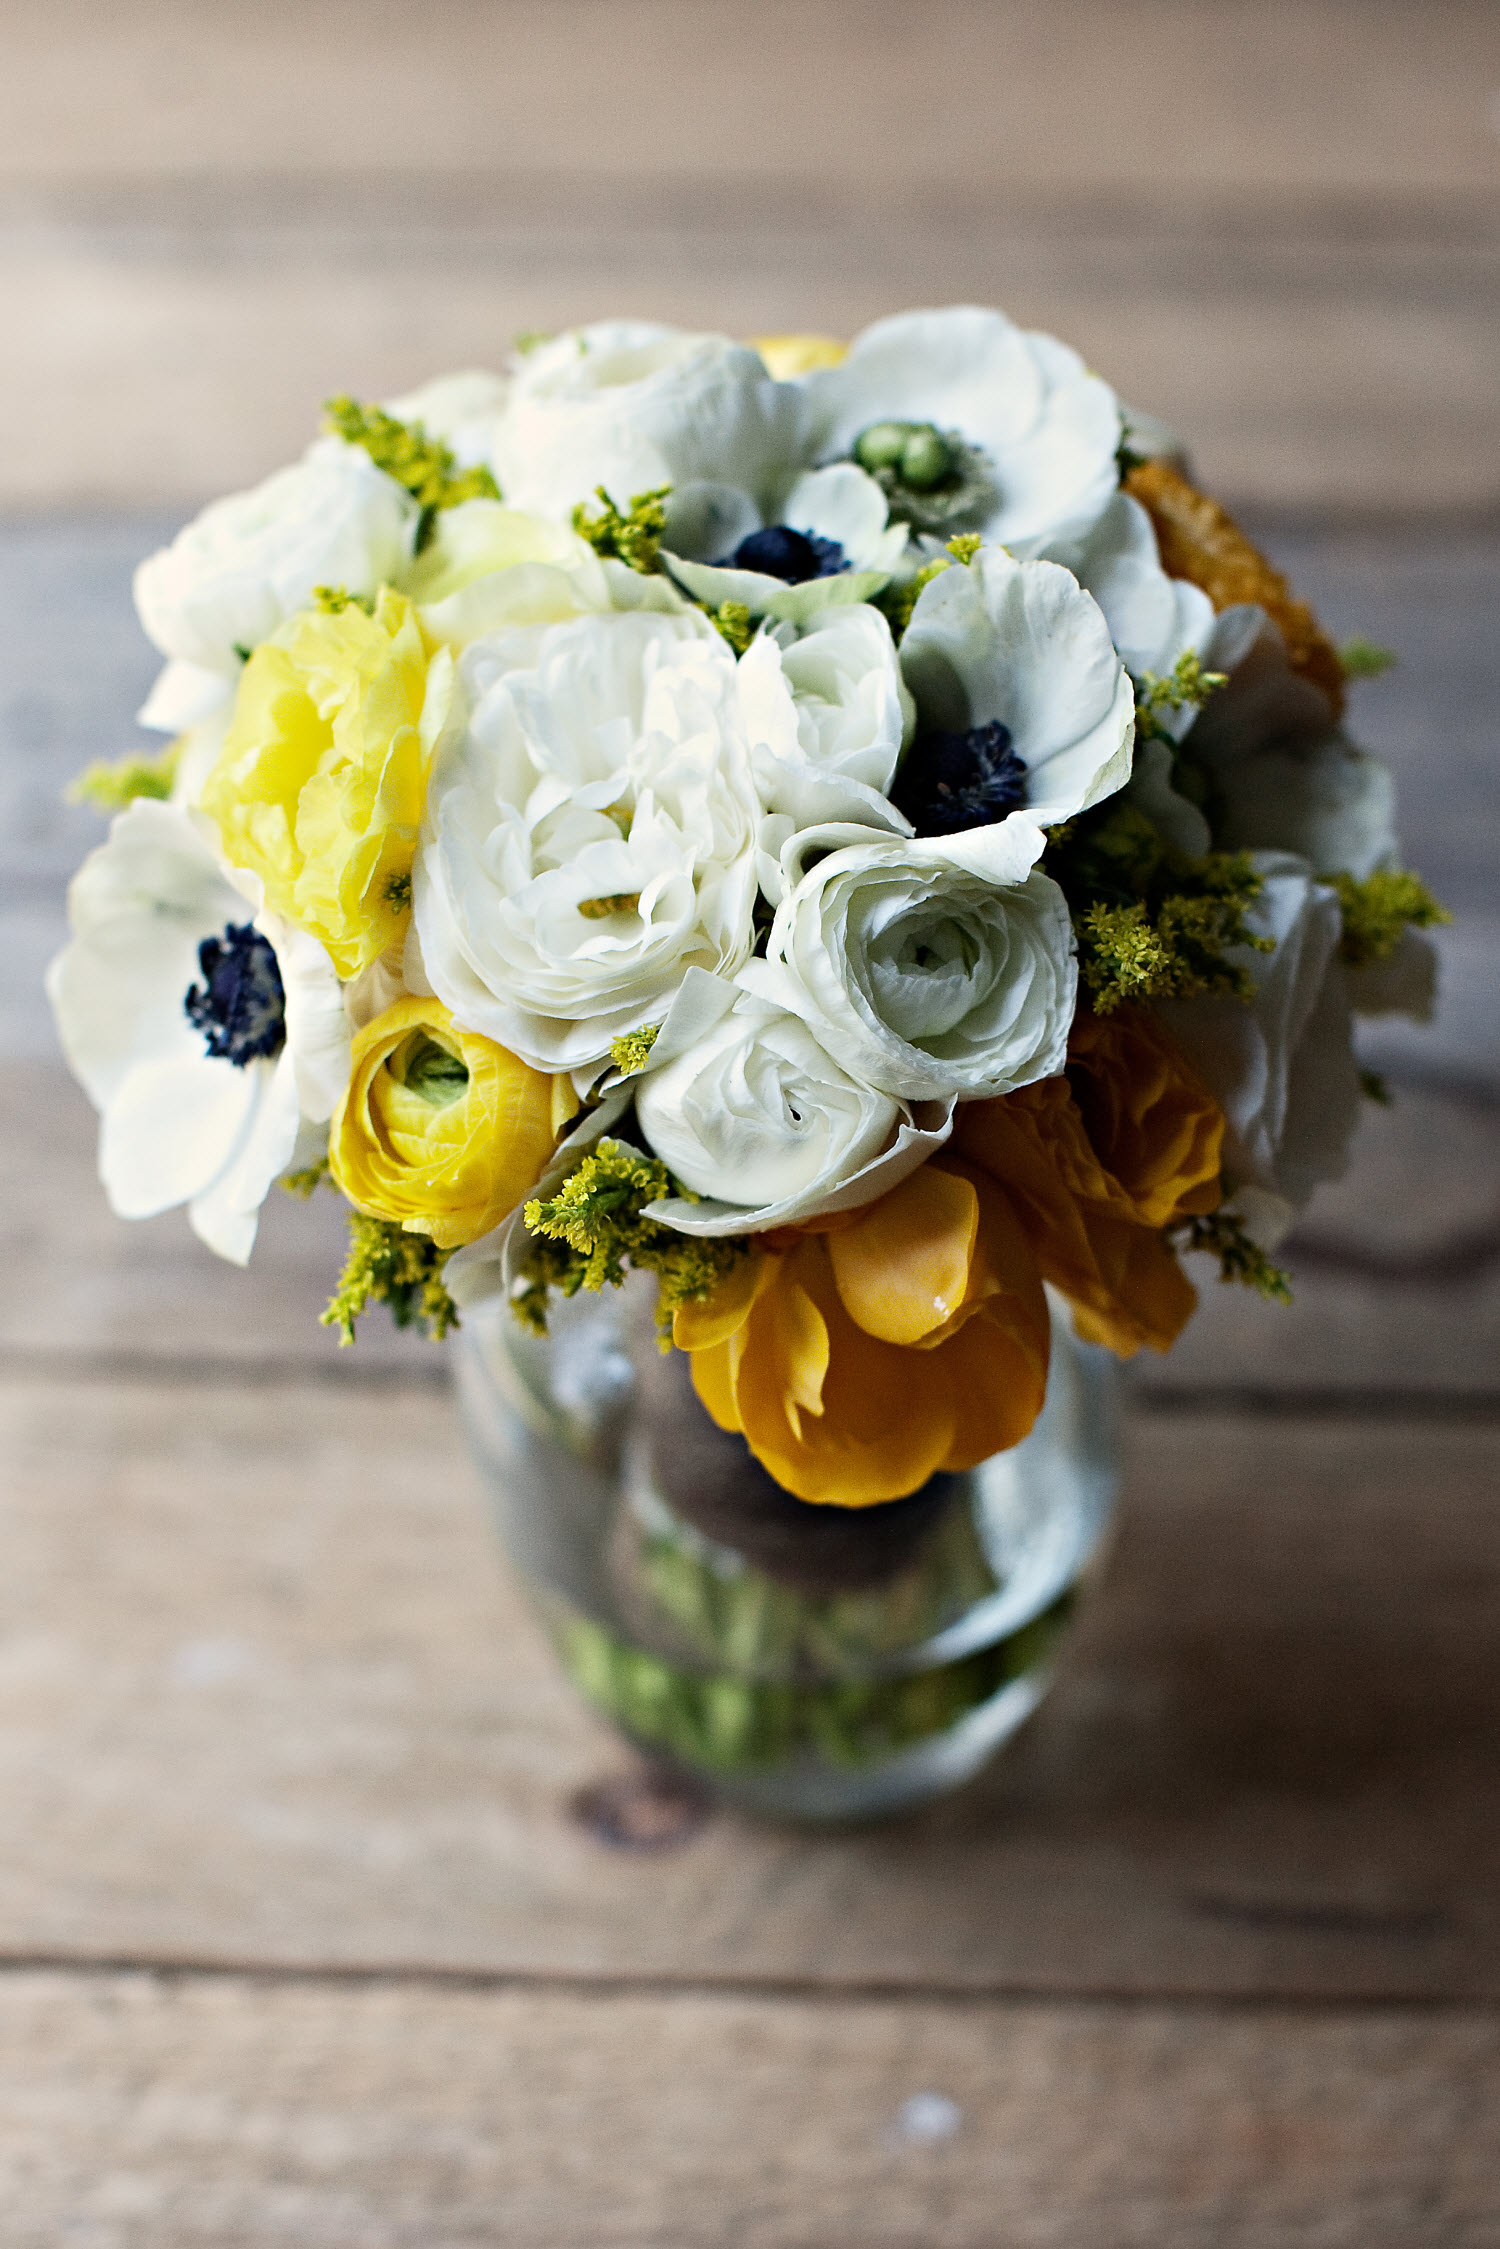 Bridal bouquets spring flowers : Romantic ivory and yellow spring bridal bouquet onewed